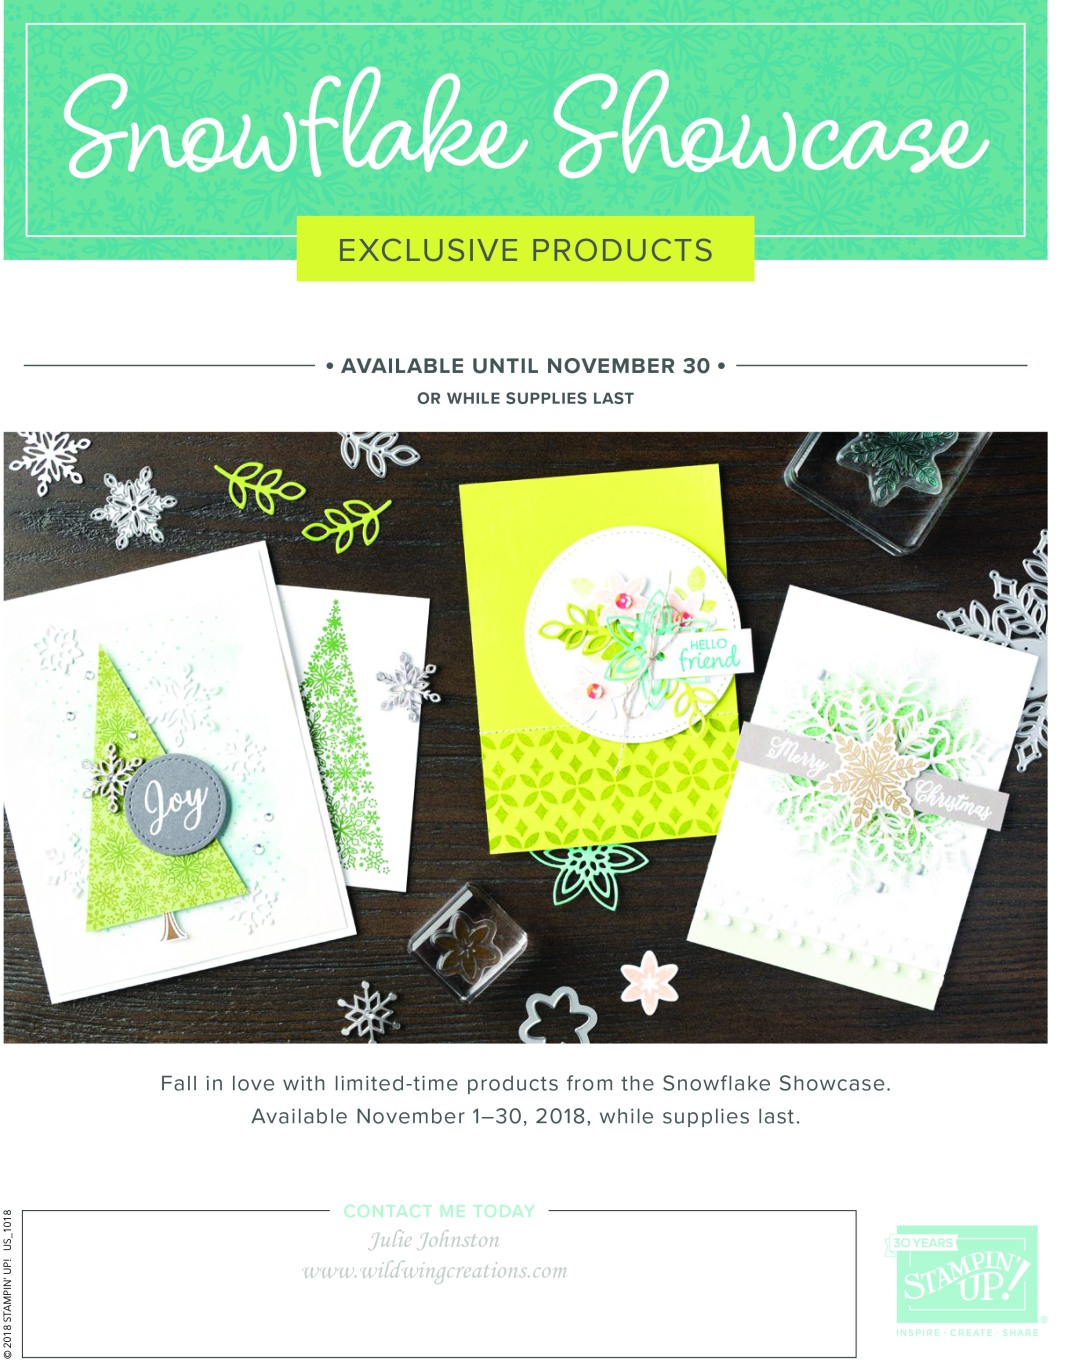 snowflake showcase